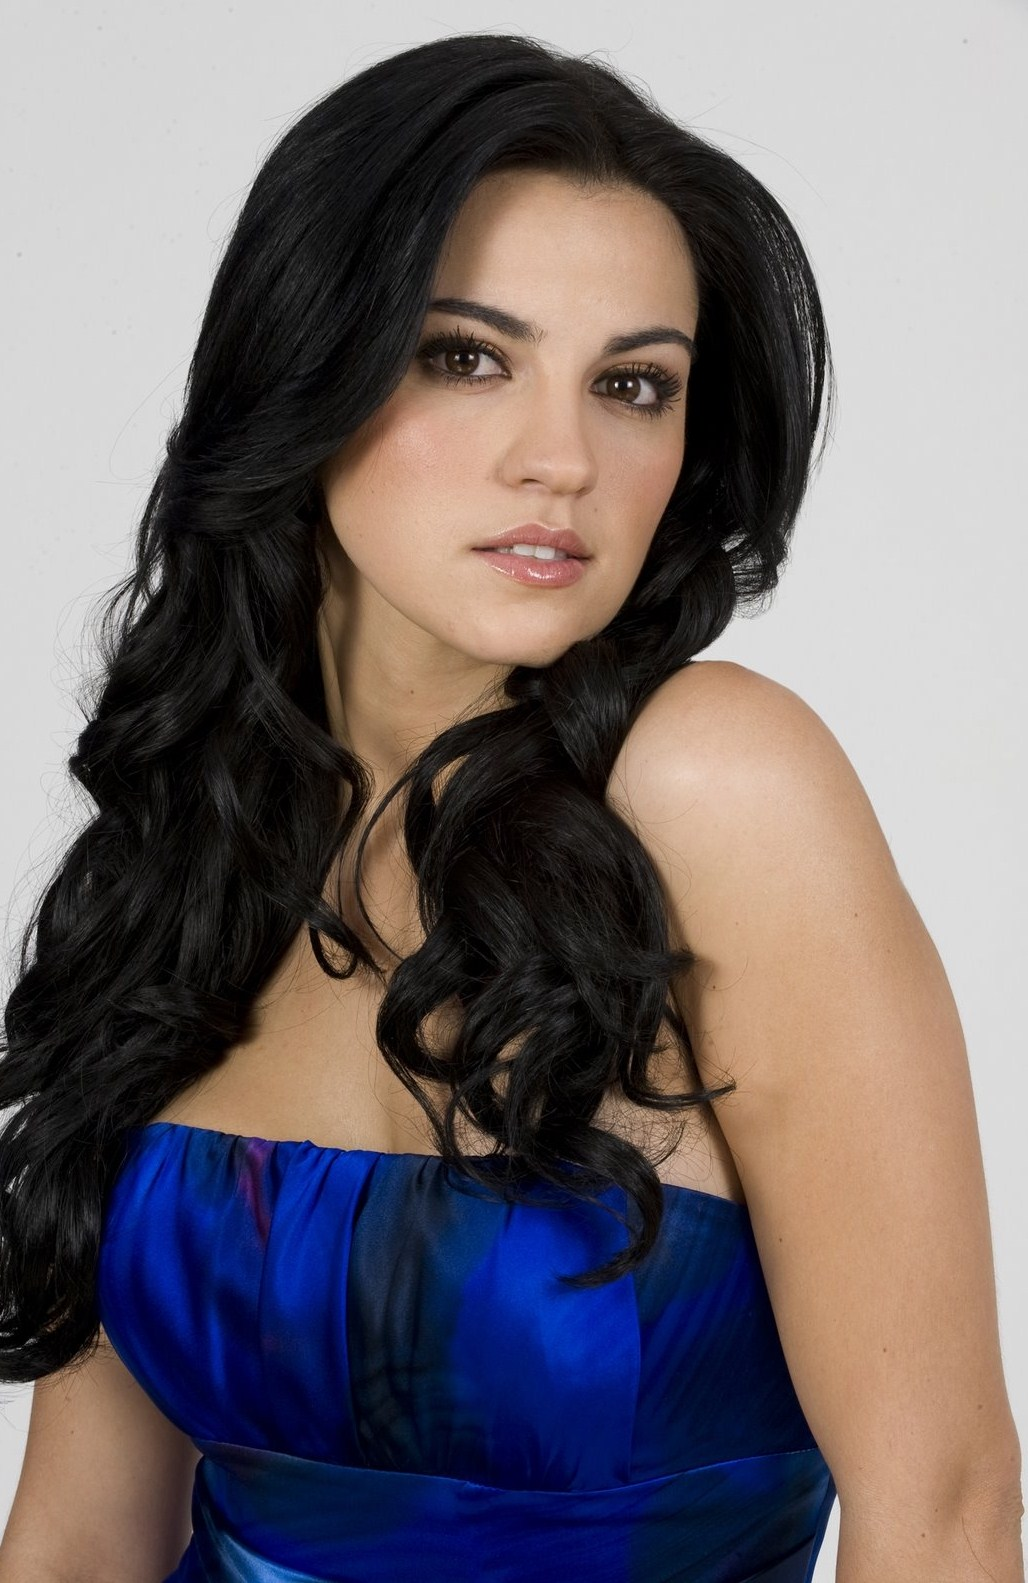 Tips: Maite Perroni, 2017s chic hair style of the cool mysterious  actress